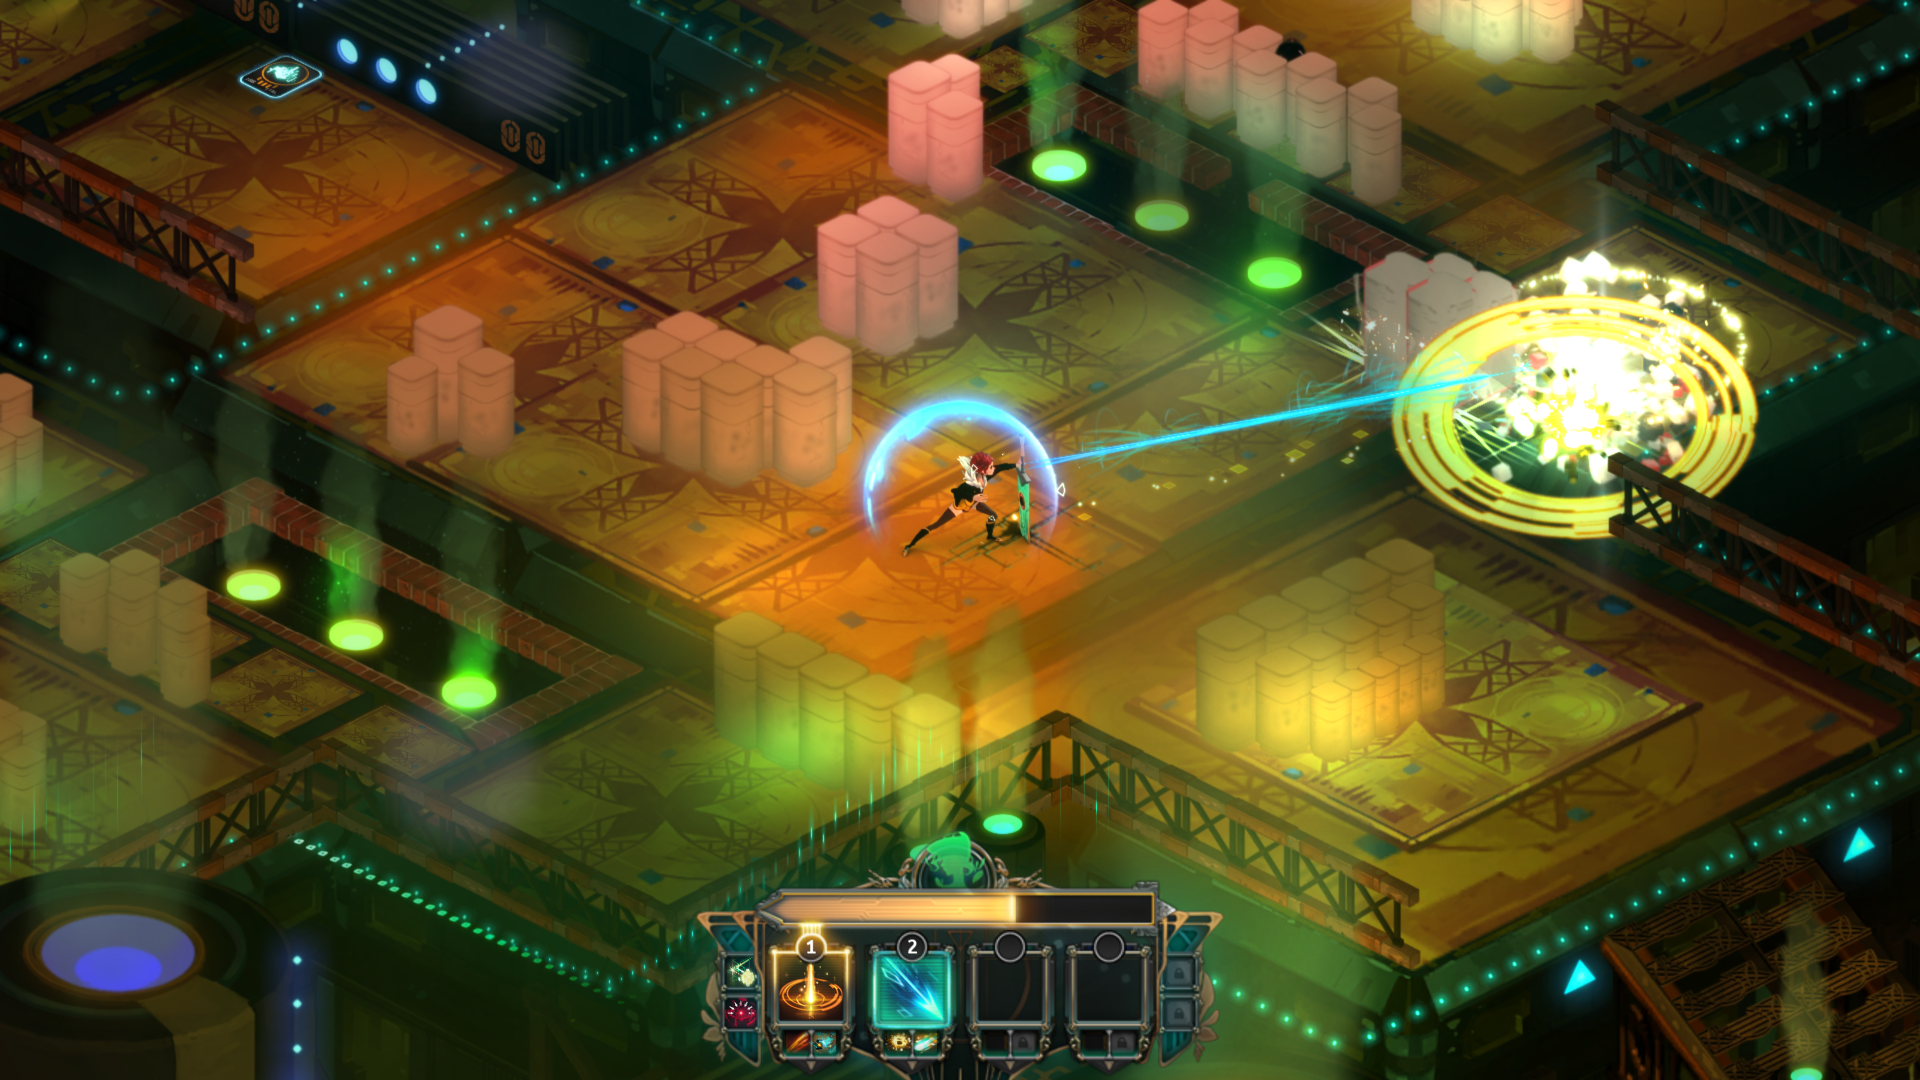 Zapping things in Transistor sure is pretty.